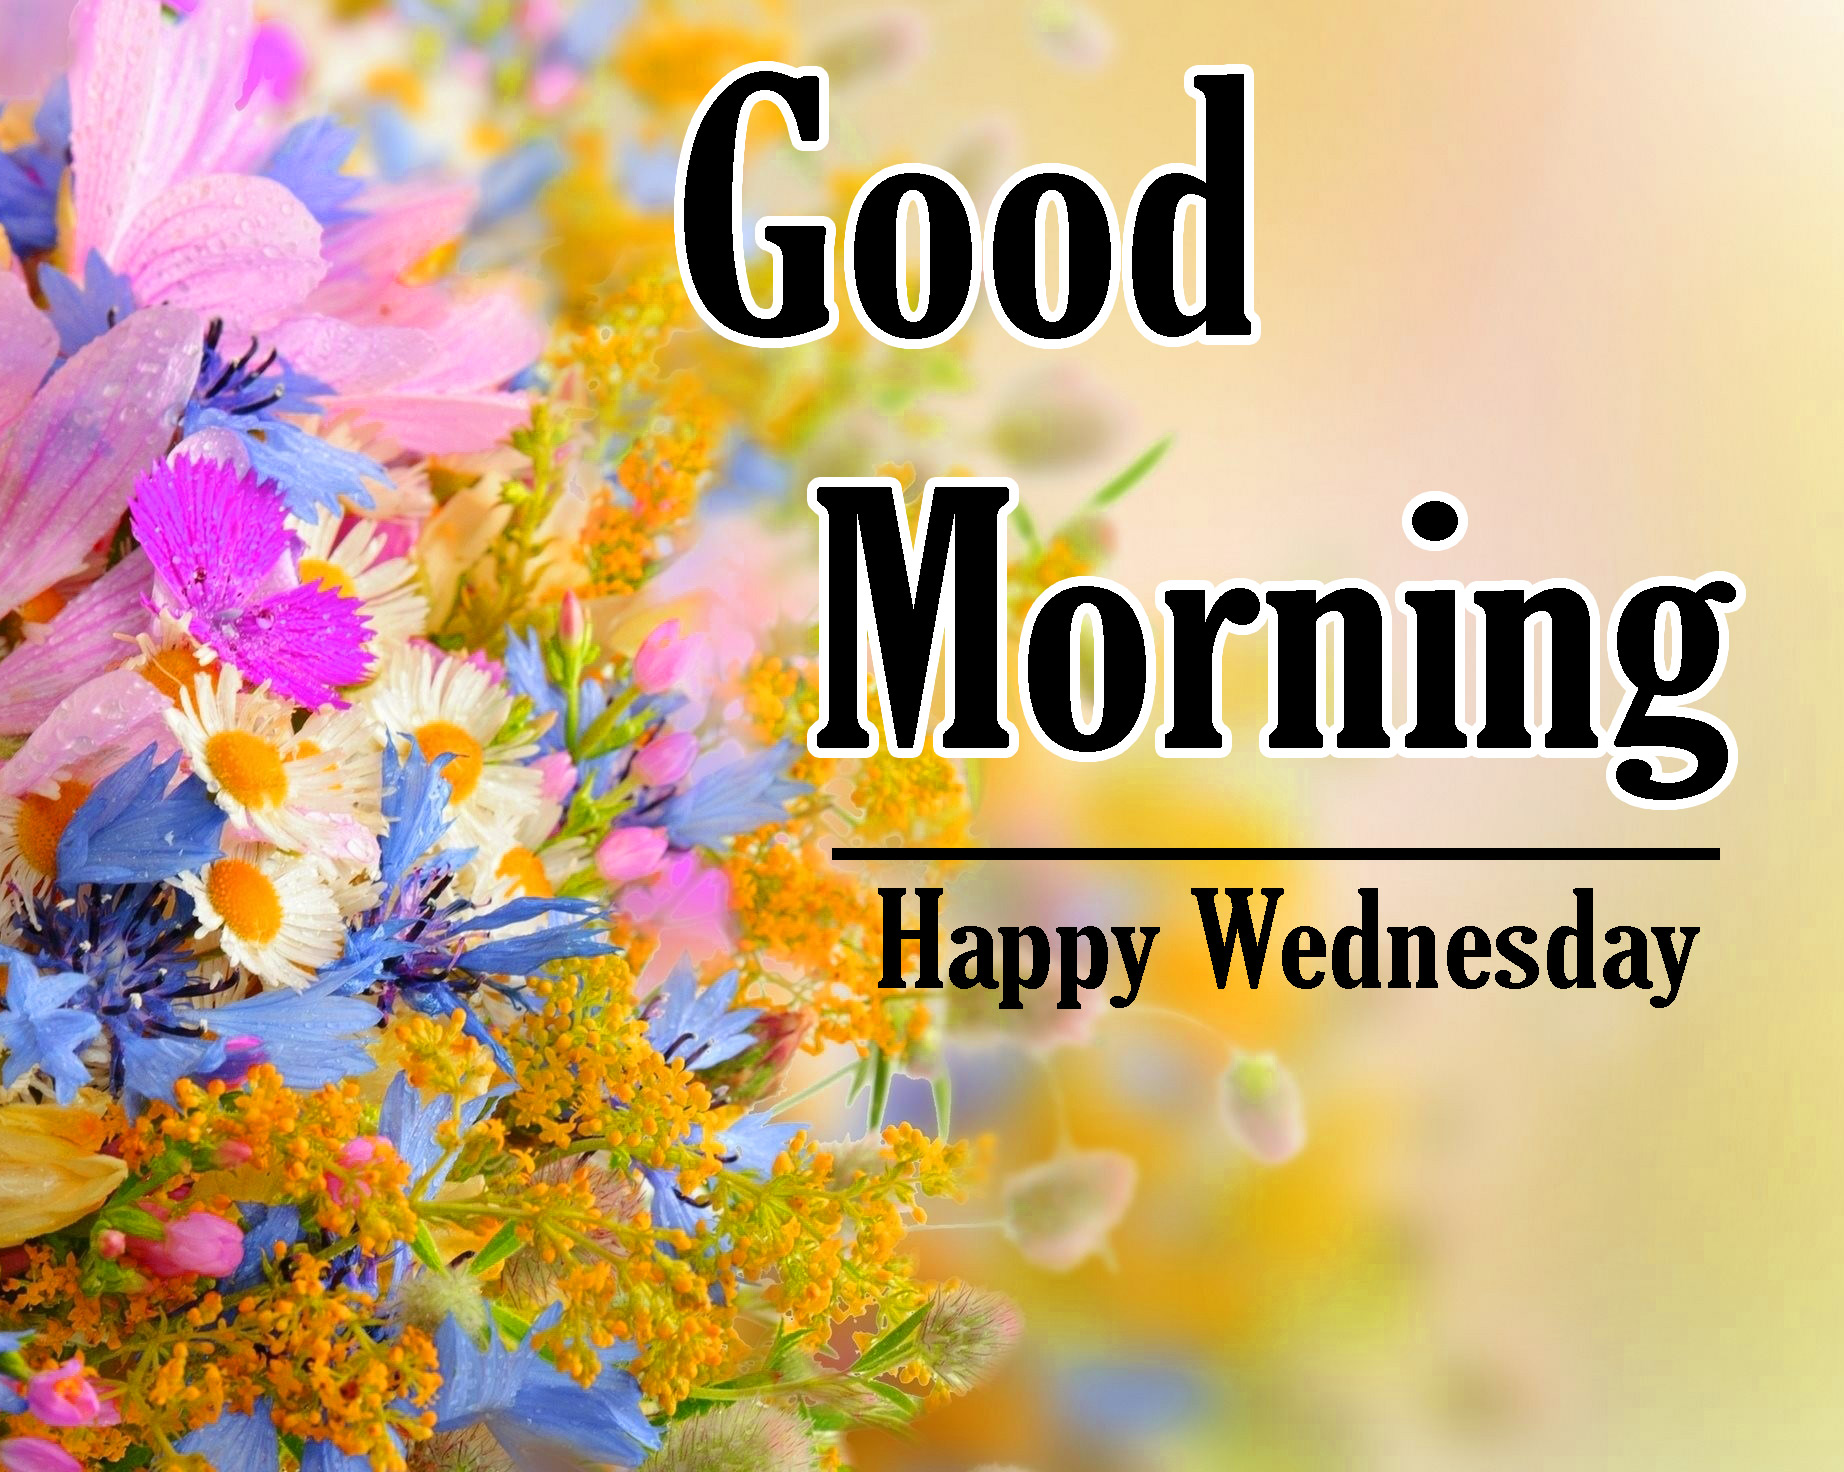 Good Morning Wednesday Photo for Facebook